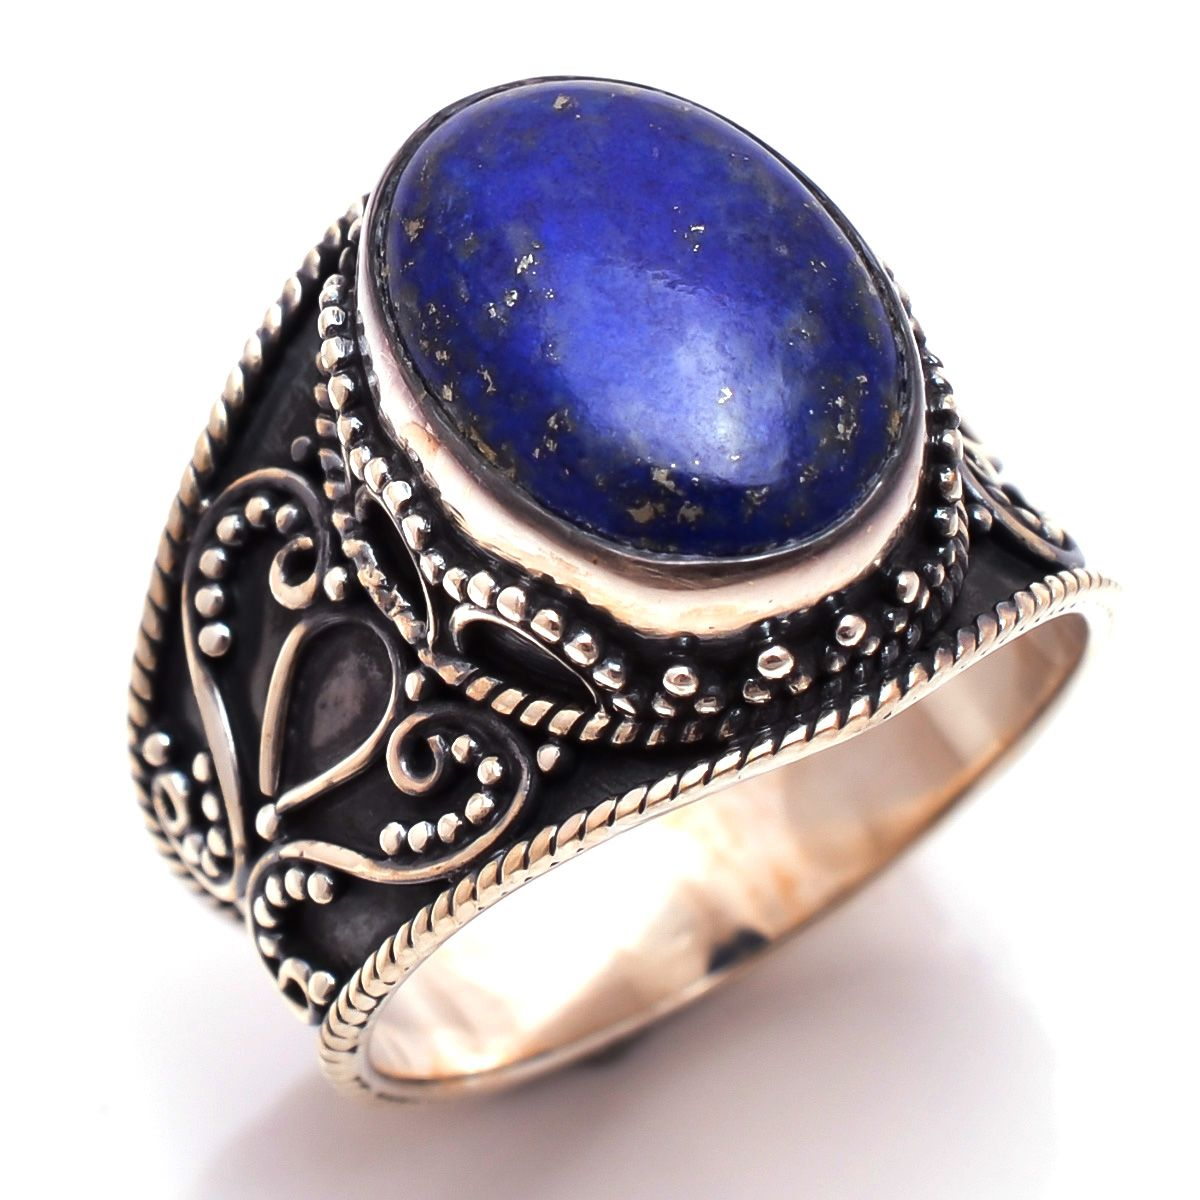 Lapis Gemstone 925 Sterling Silver Ring Size 8